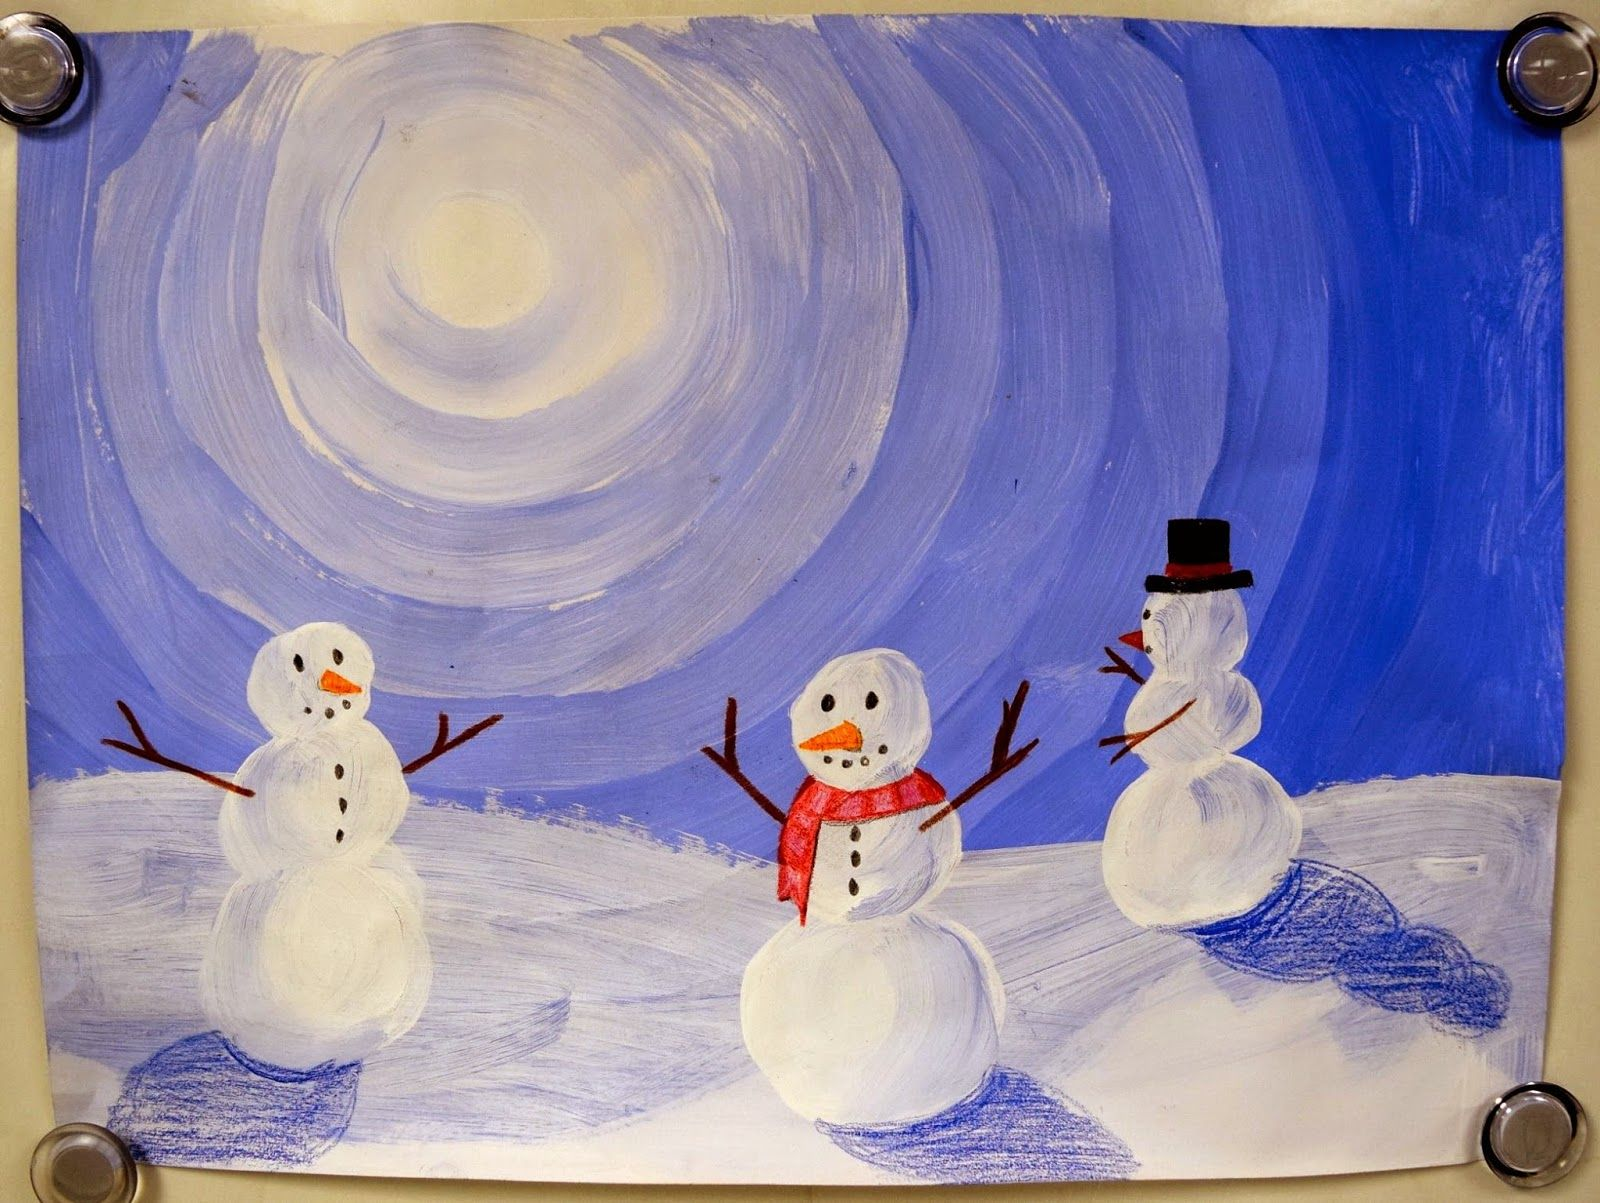 34+ Snowman craft ideas for 3rd graders information